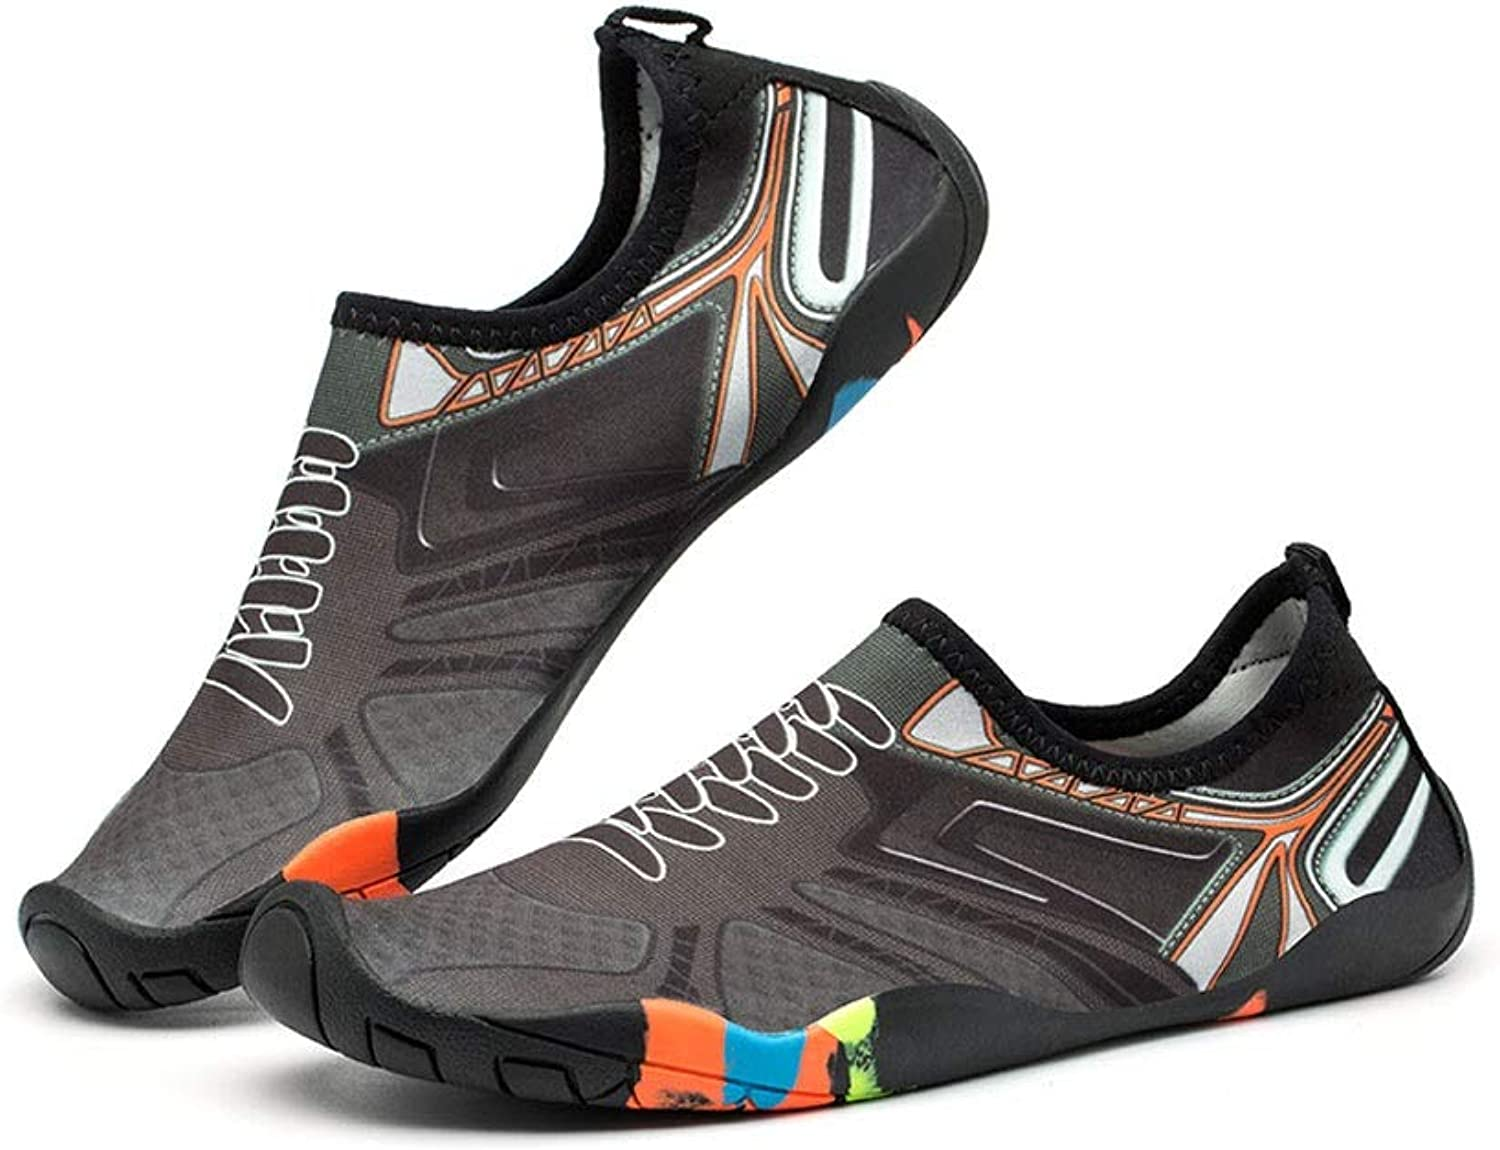 Ailj Water shoes, Outdoor Men and Women Water Ski shoes Non-Slip Quick Drying Wading shoes 2 colors